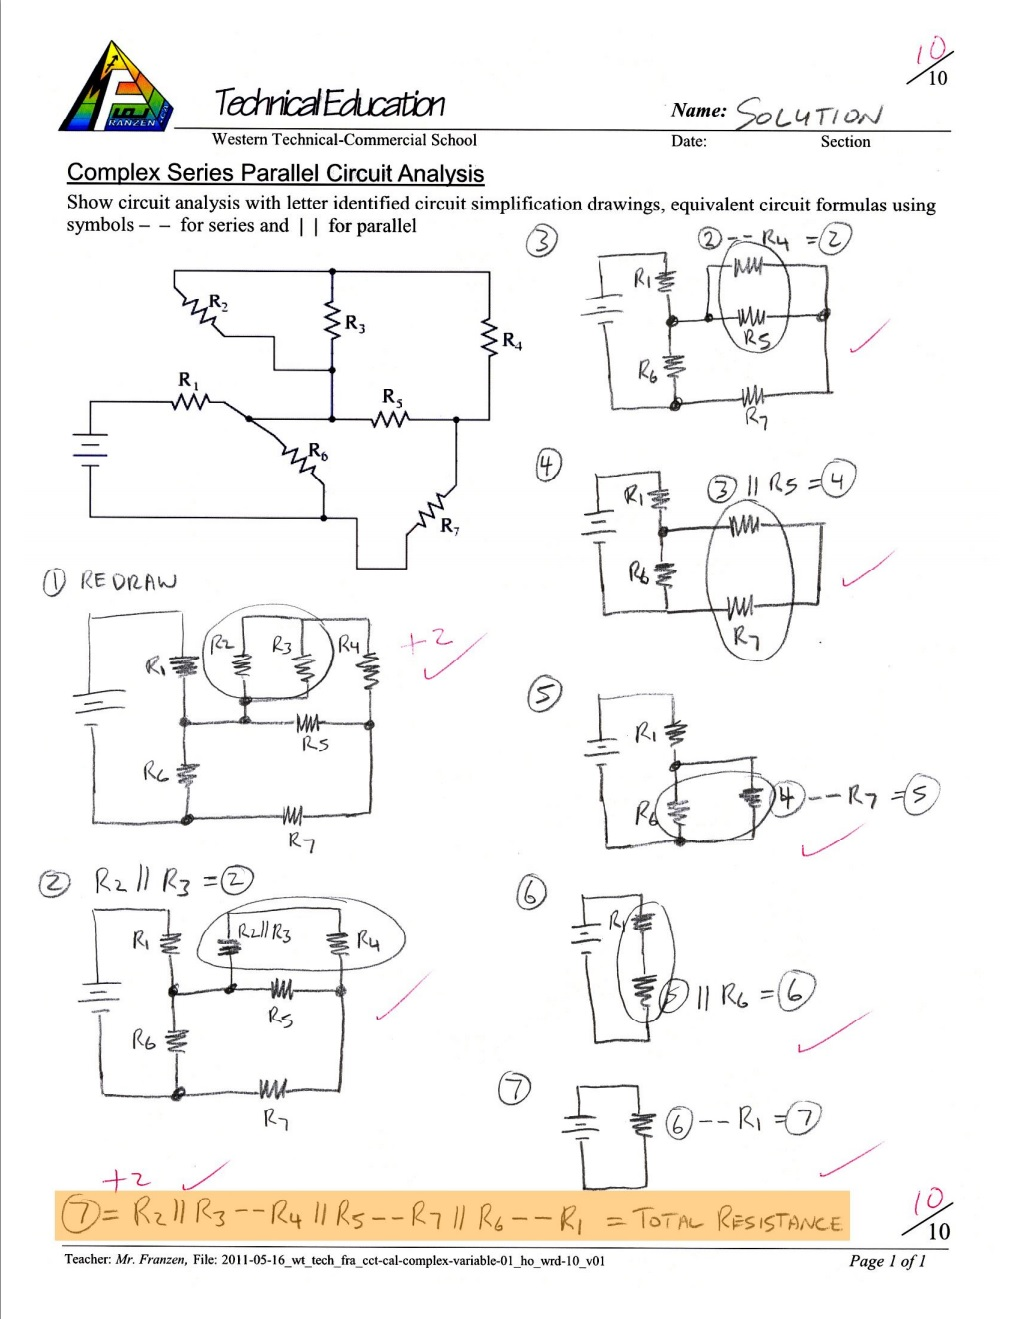 Unit 1 Computer Engineering Technology Robotics and Control Systems – Parallel and Series Circuits Worksheet